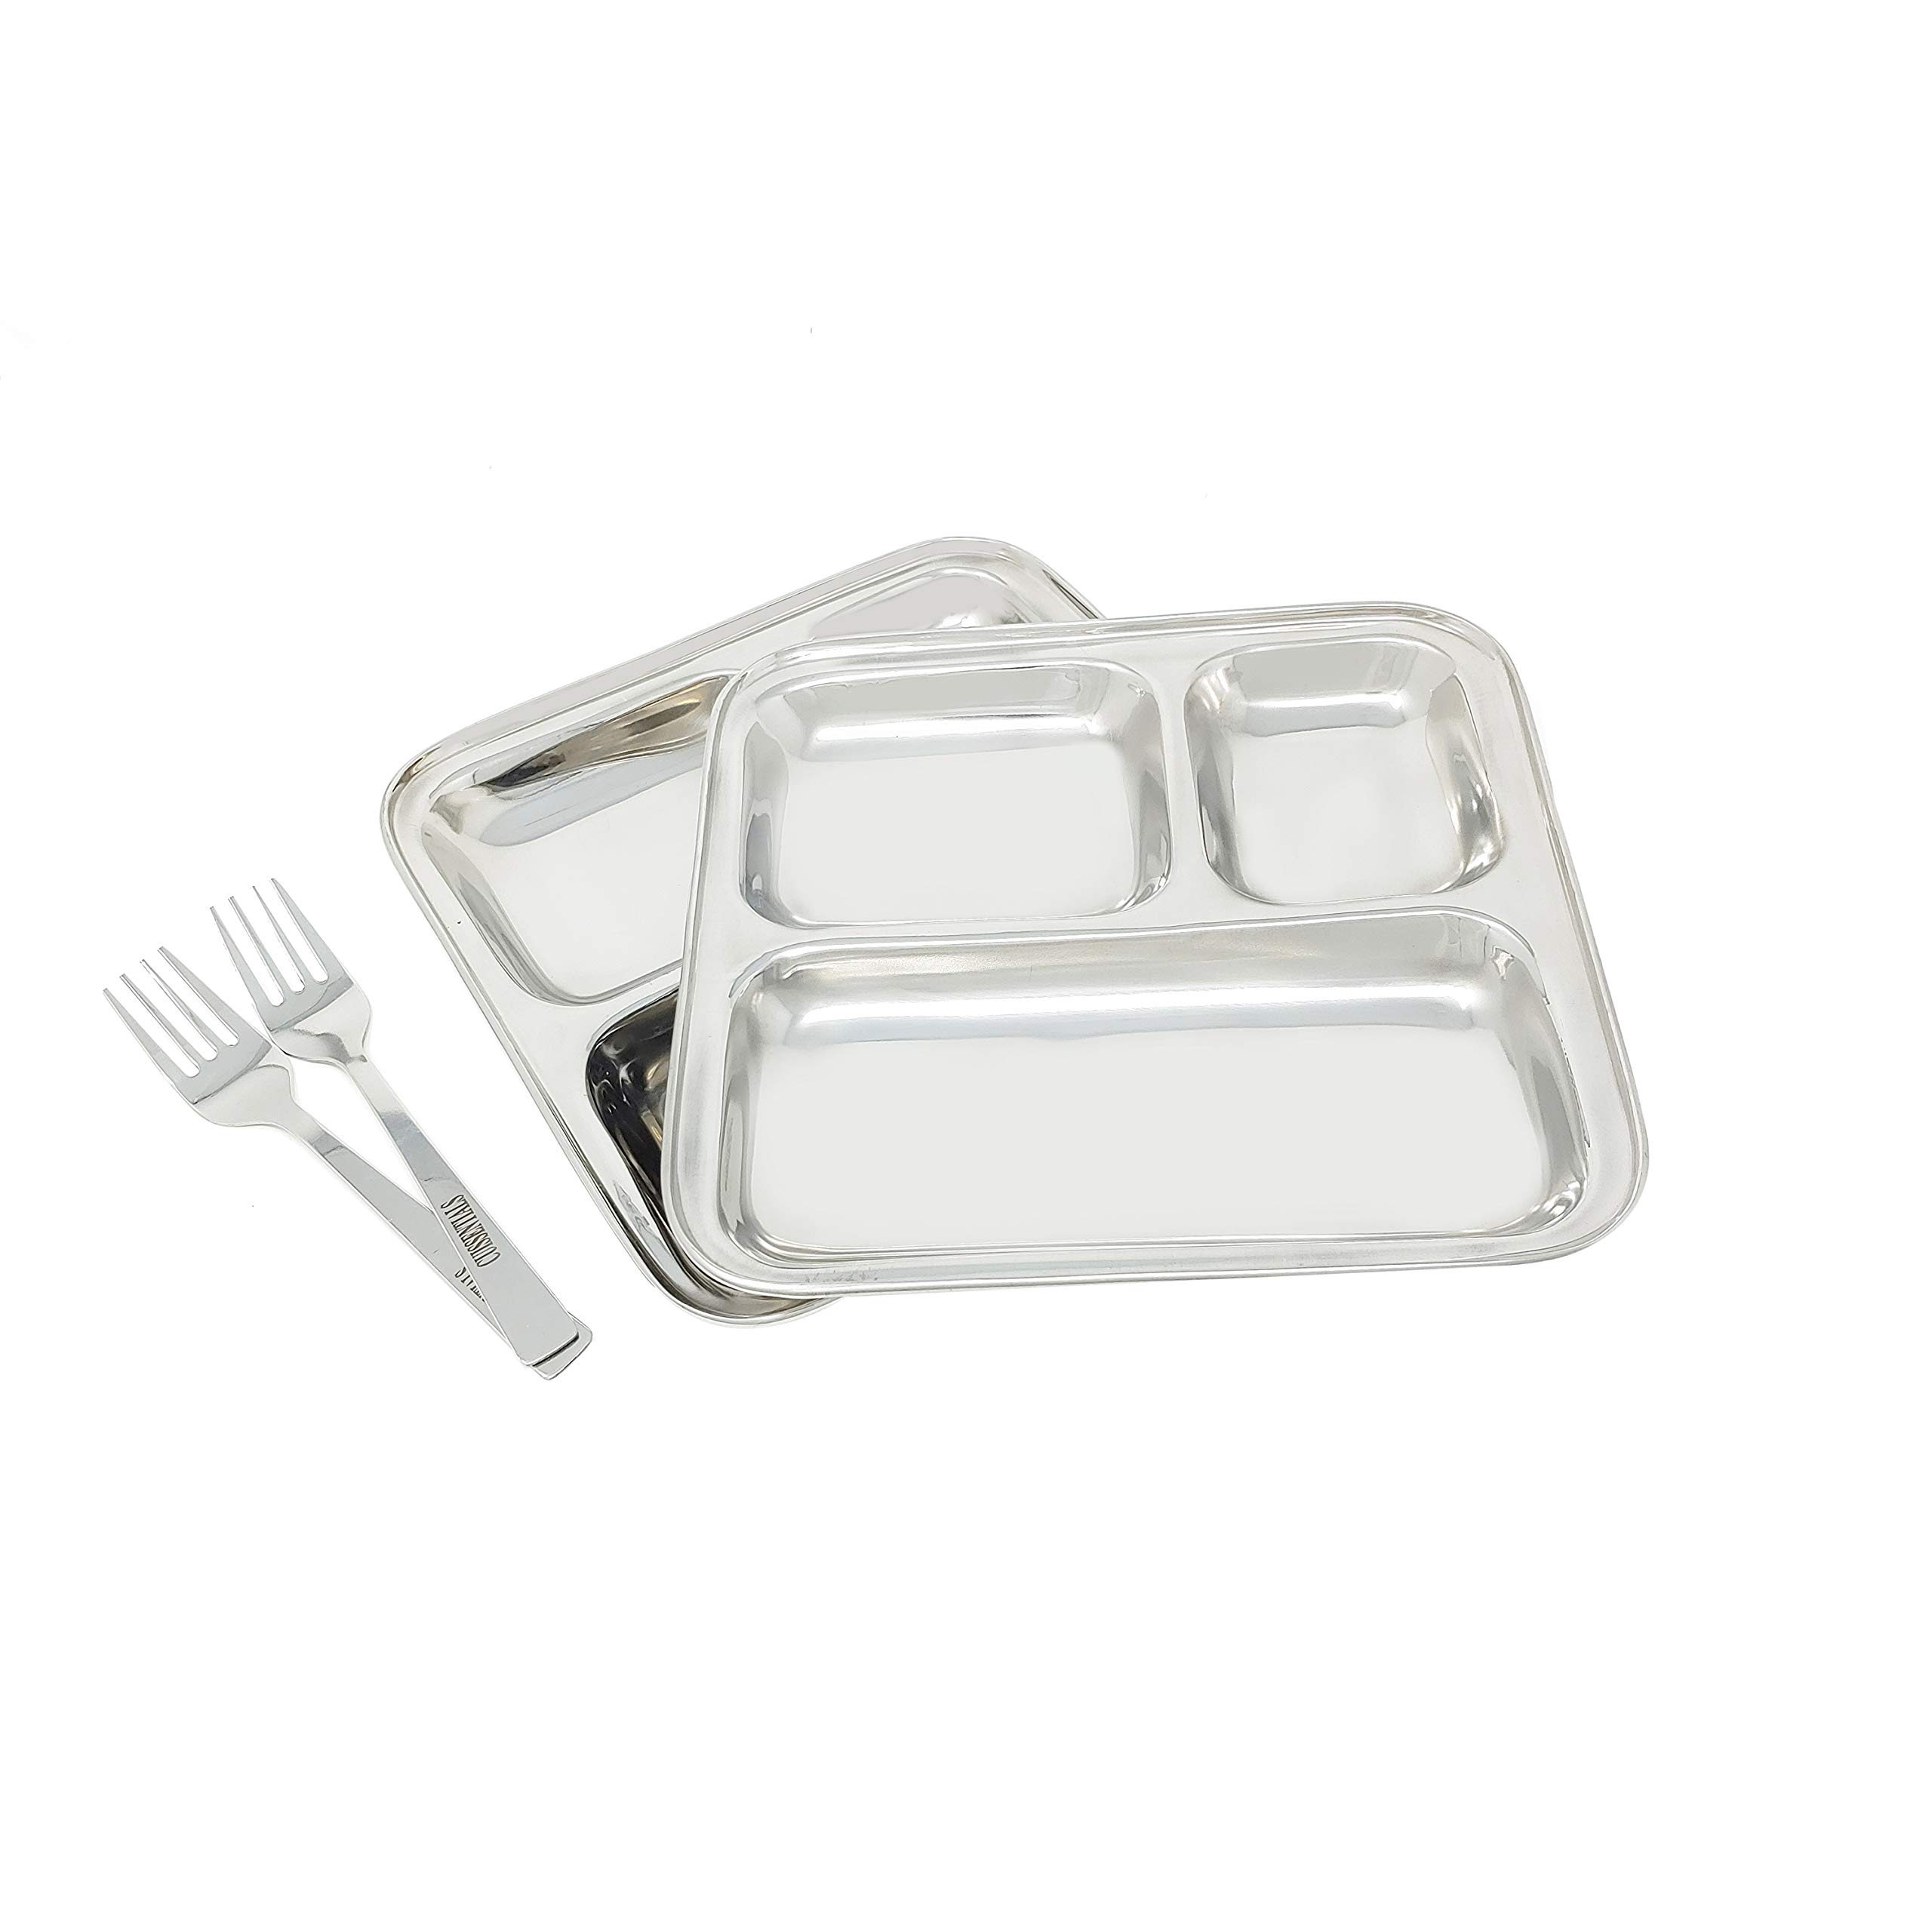 3 Section Stainless Steel Trays Set of 2 Plates with 2 Free Fork - Every Day Use for Picnic Kids School Camping Travel - 10 inches by Cuissentials